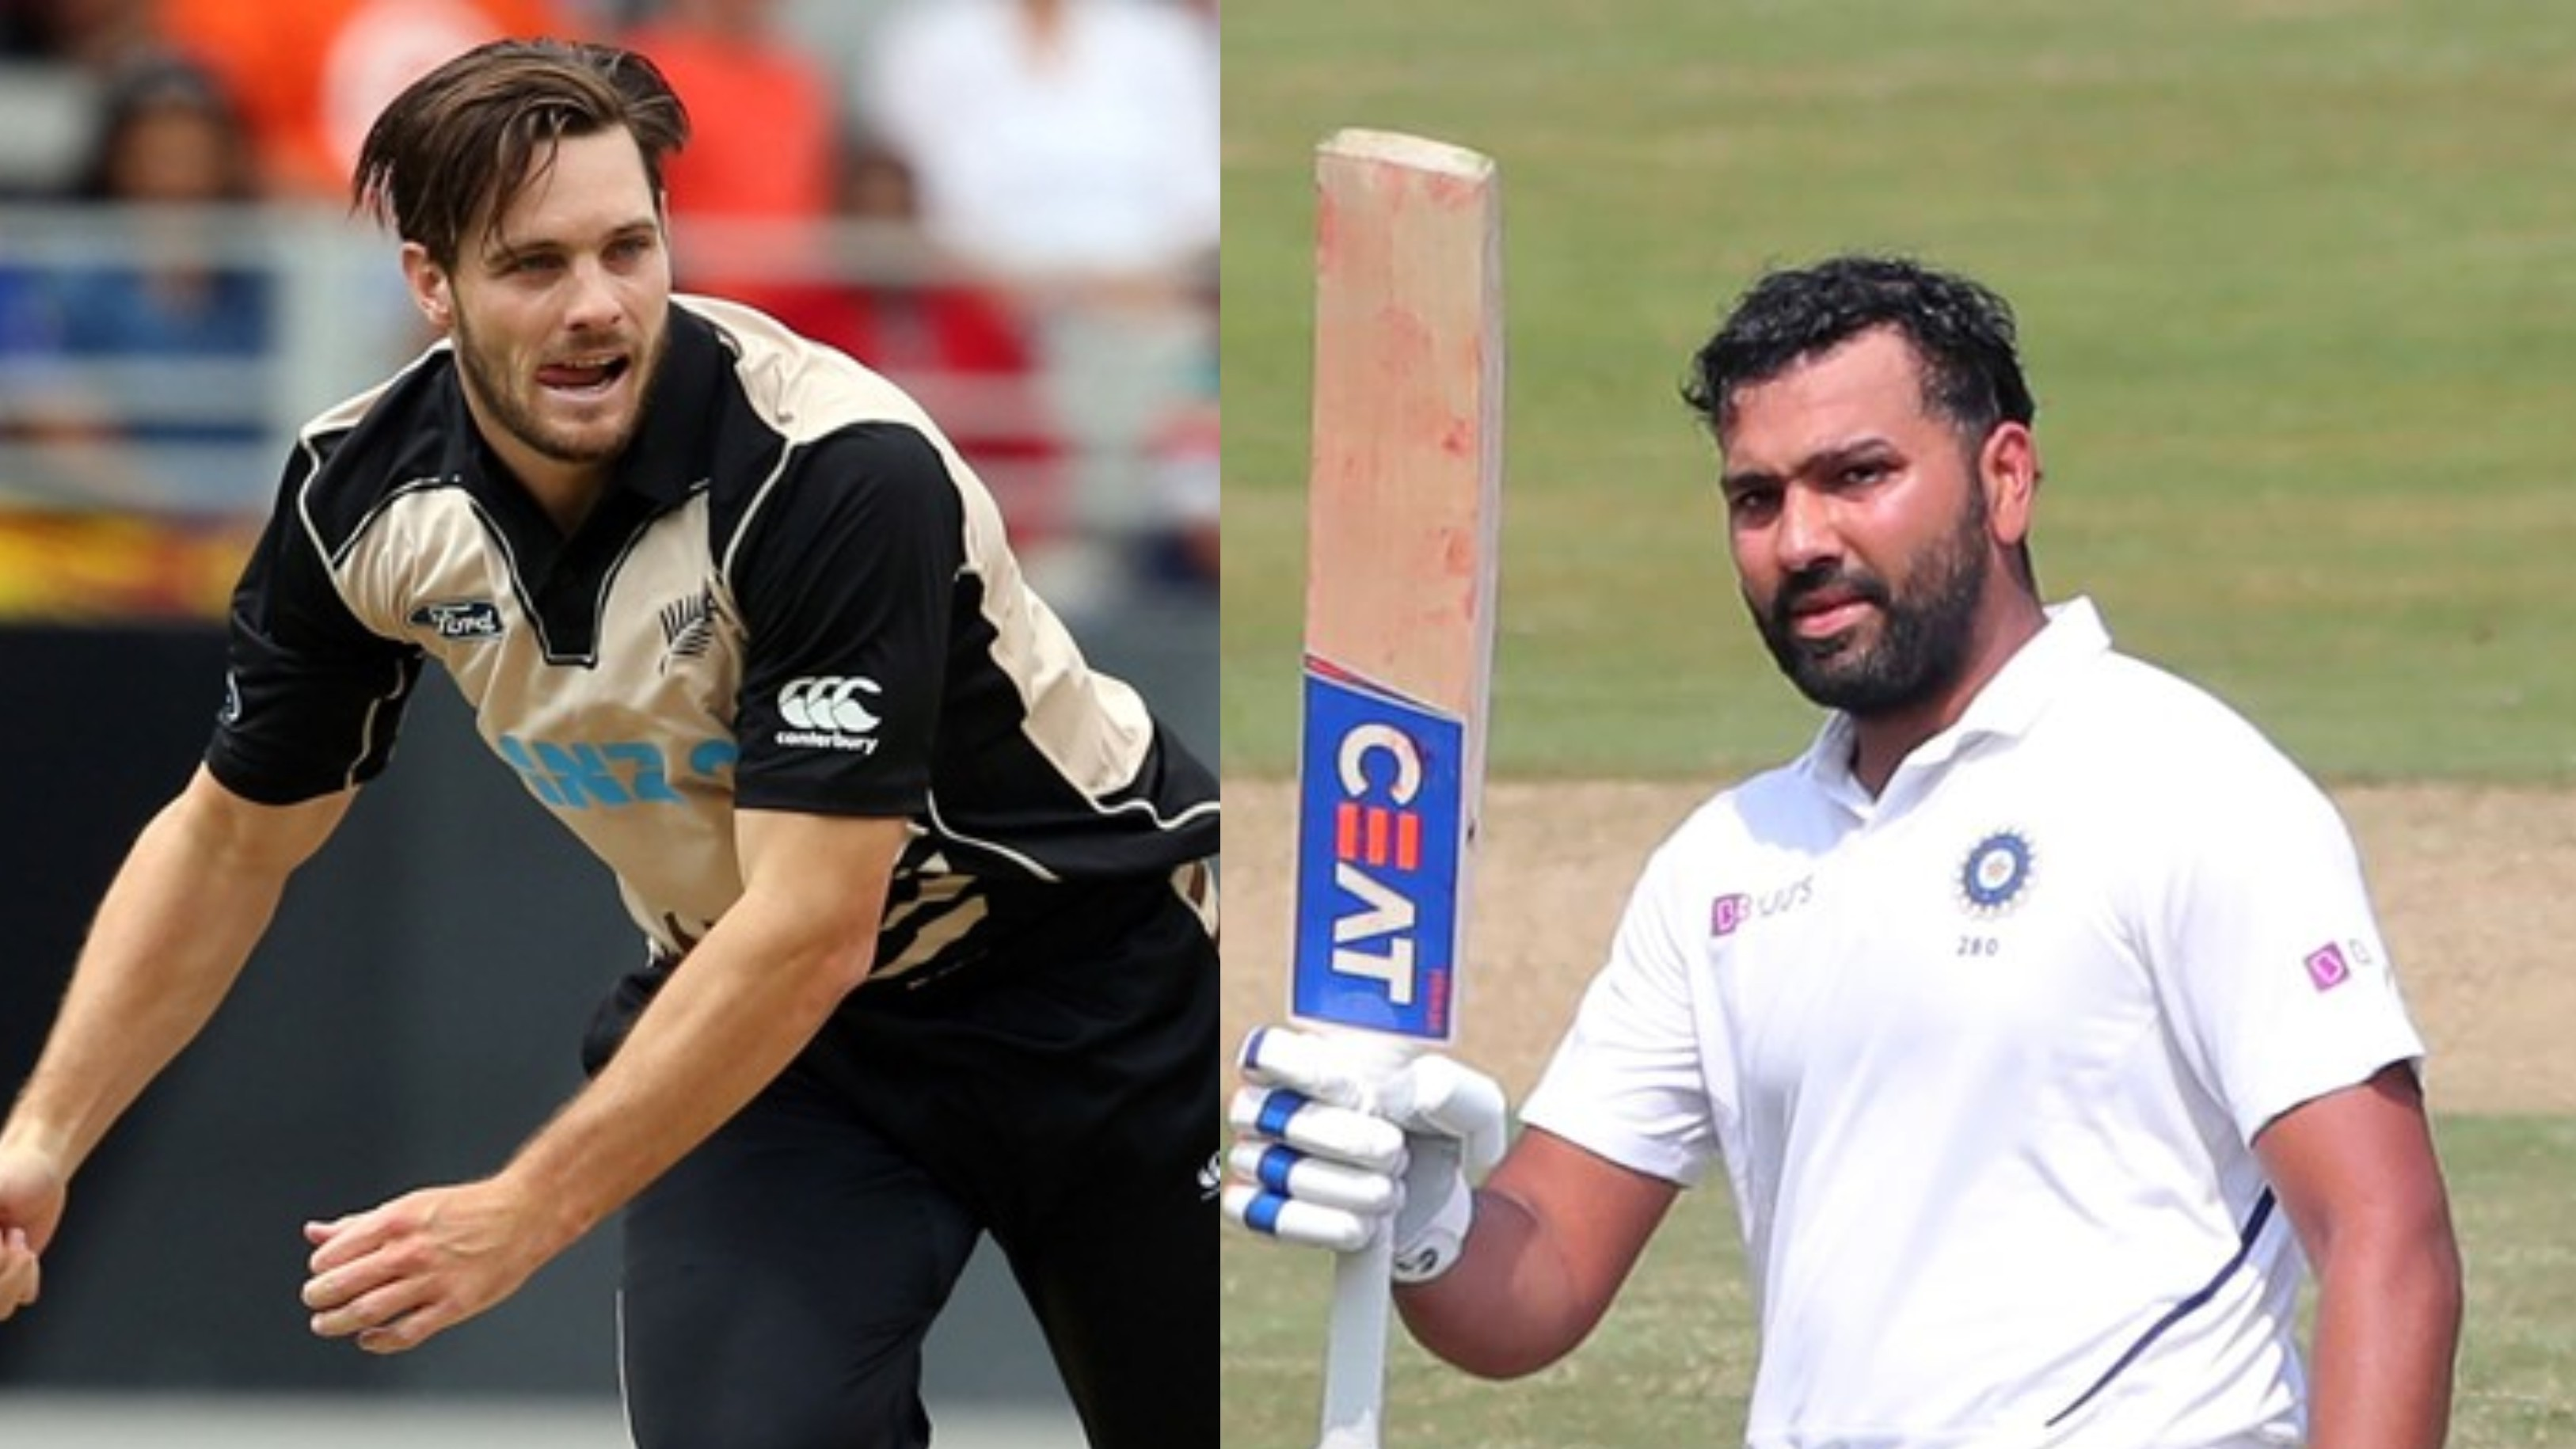 Rohit Sharma's presence could've made difference in NZ-IND Test series result, says McClenaghan